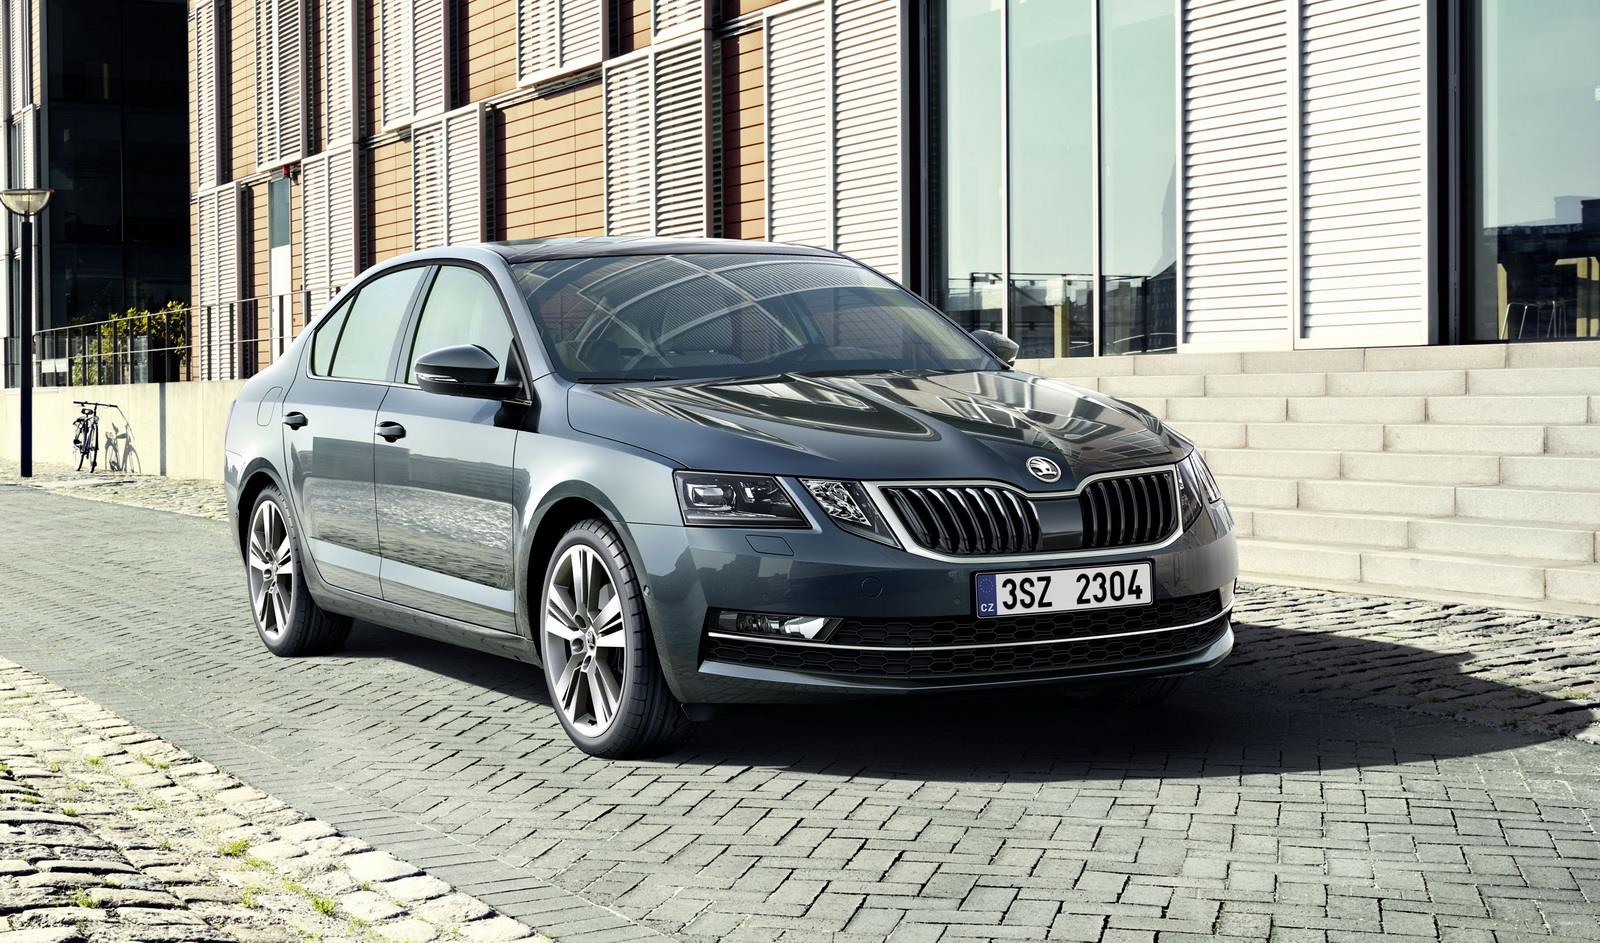 2017 Skoda Octavia: Five things to know